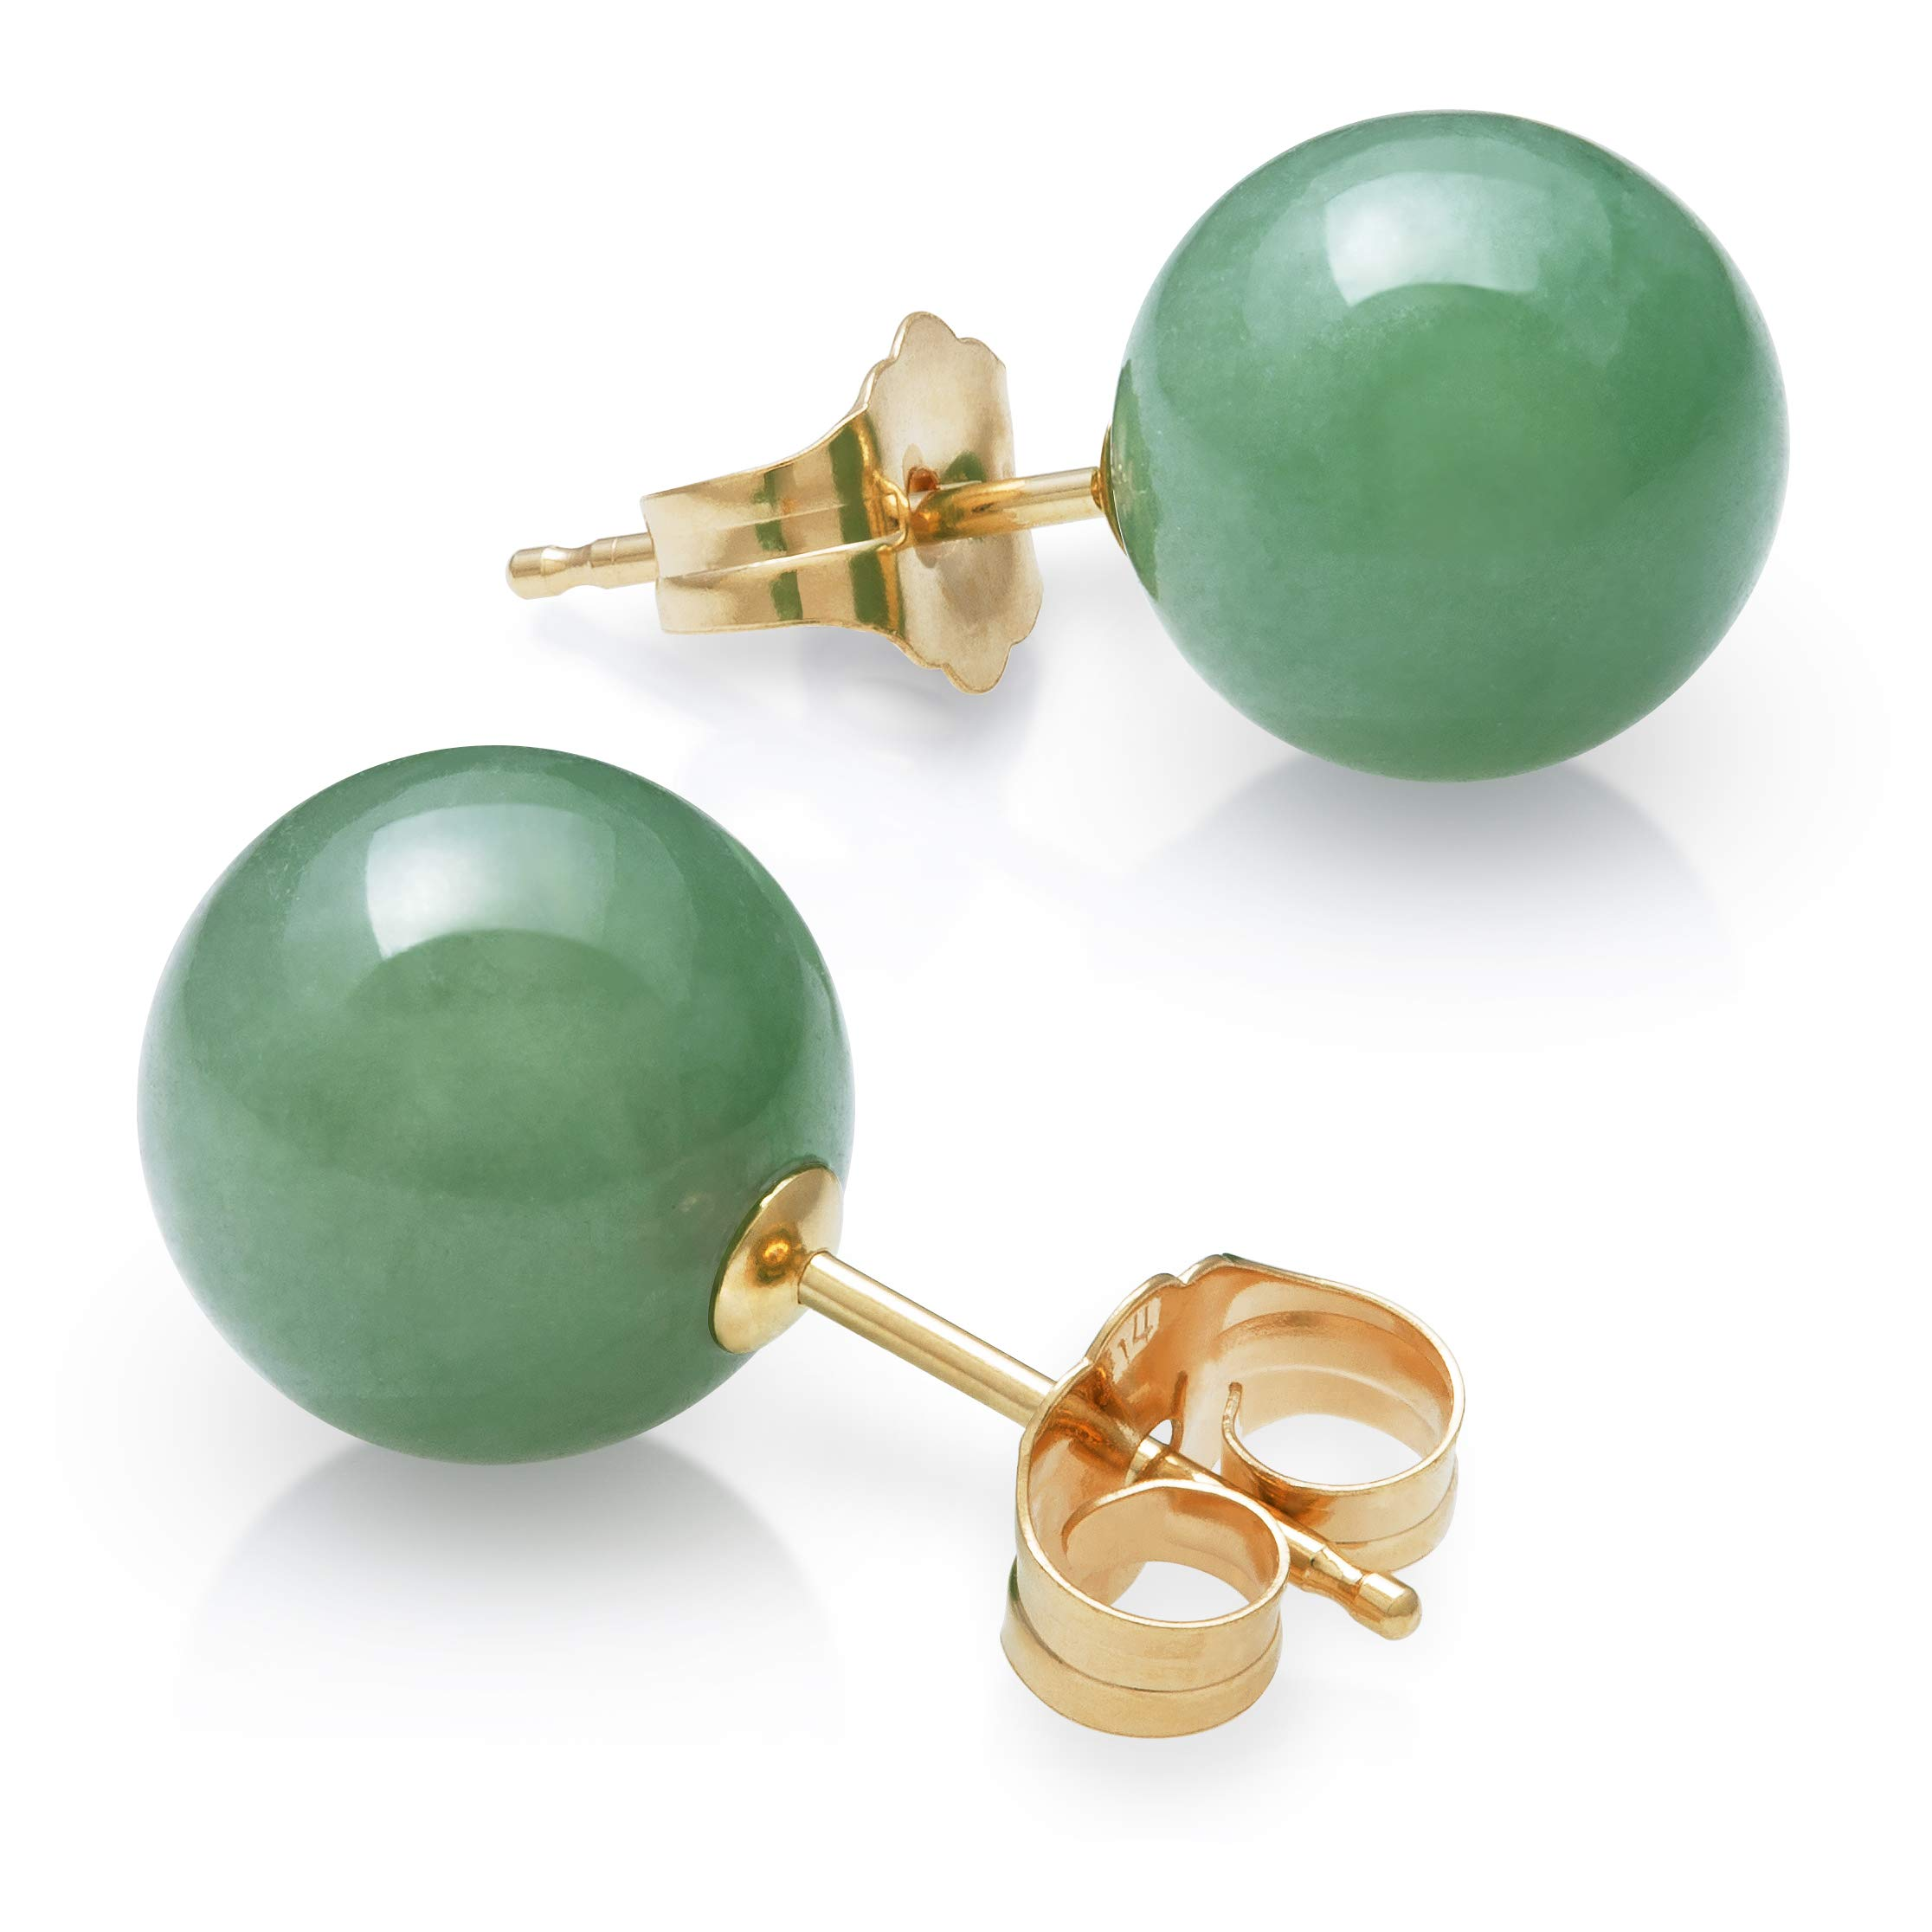 14K Yellow Gold Natural Green Jade Round Stud Earrings (8mm) by Belacqua